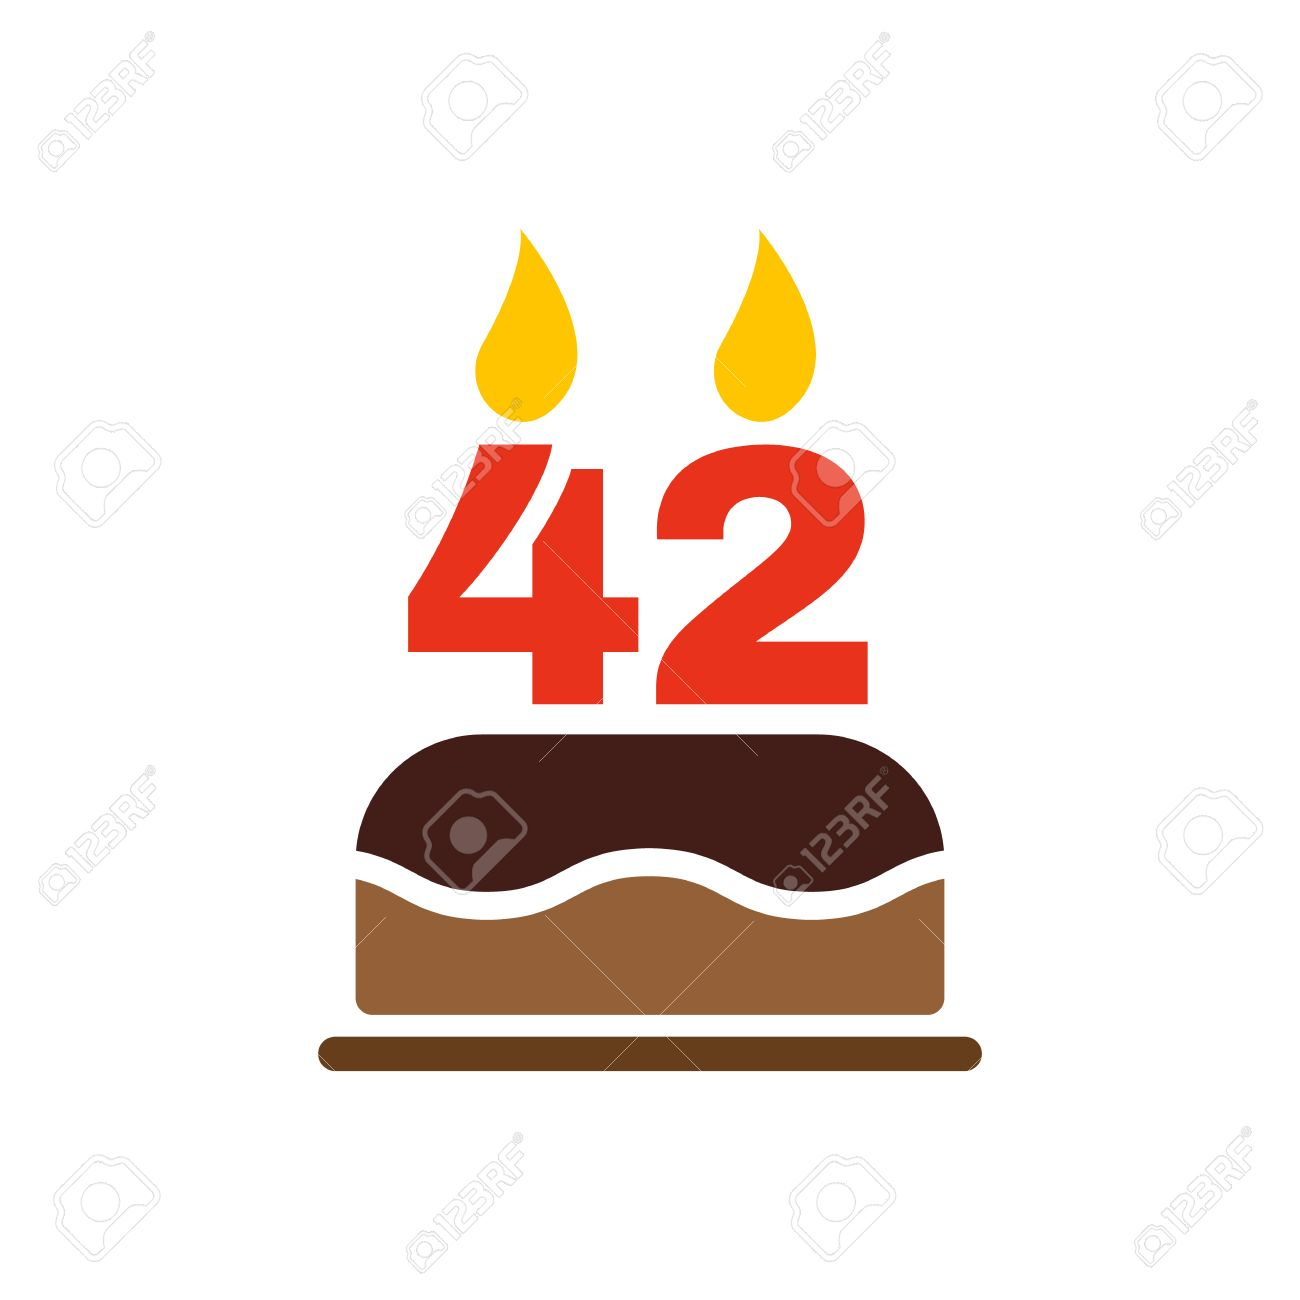 Tremendous The Birthday Cake With Candles In The Form Of Number 42 Icon Funny Birthday Cards Online Fluifree Goldxyz